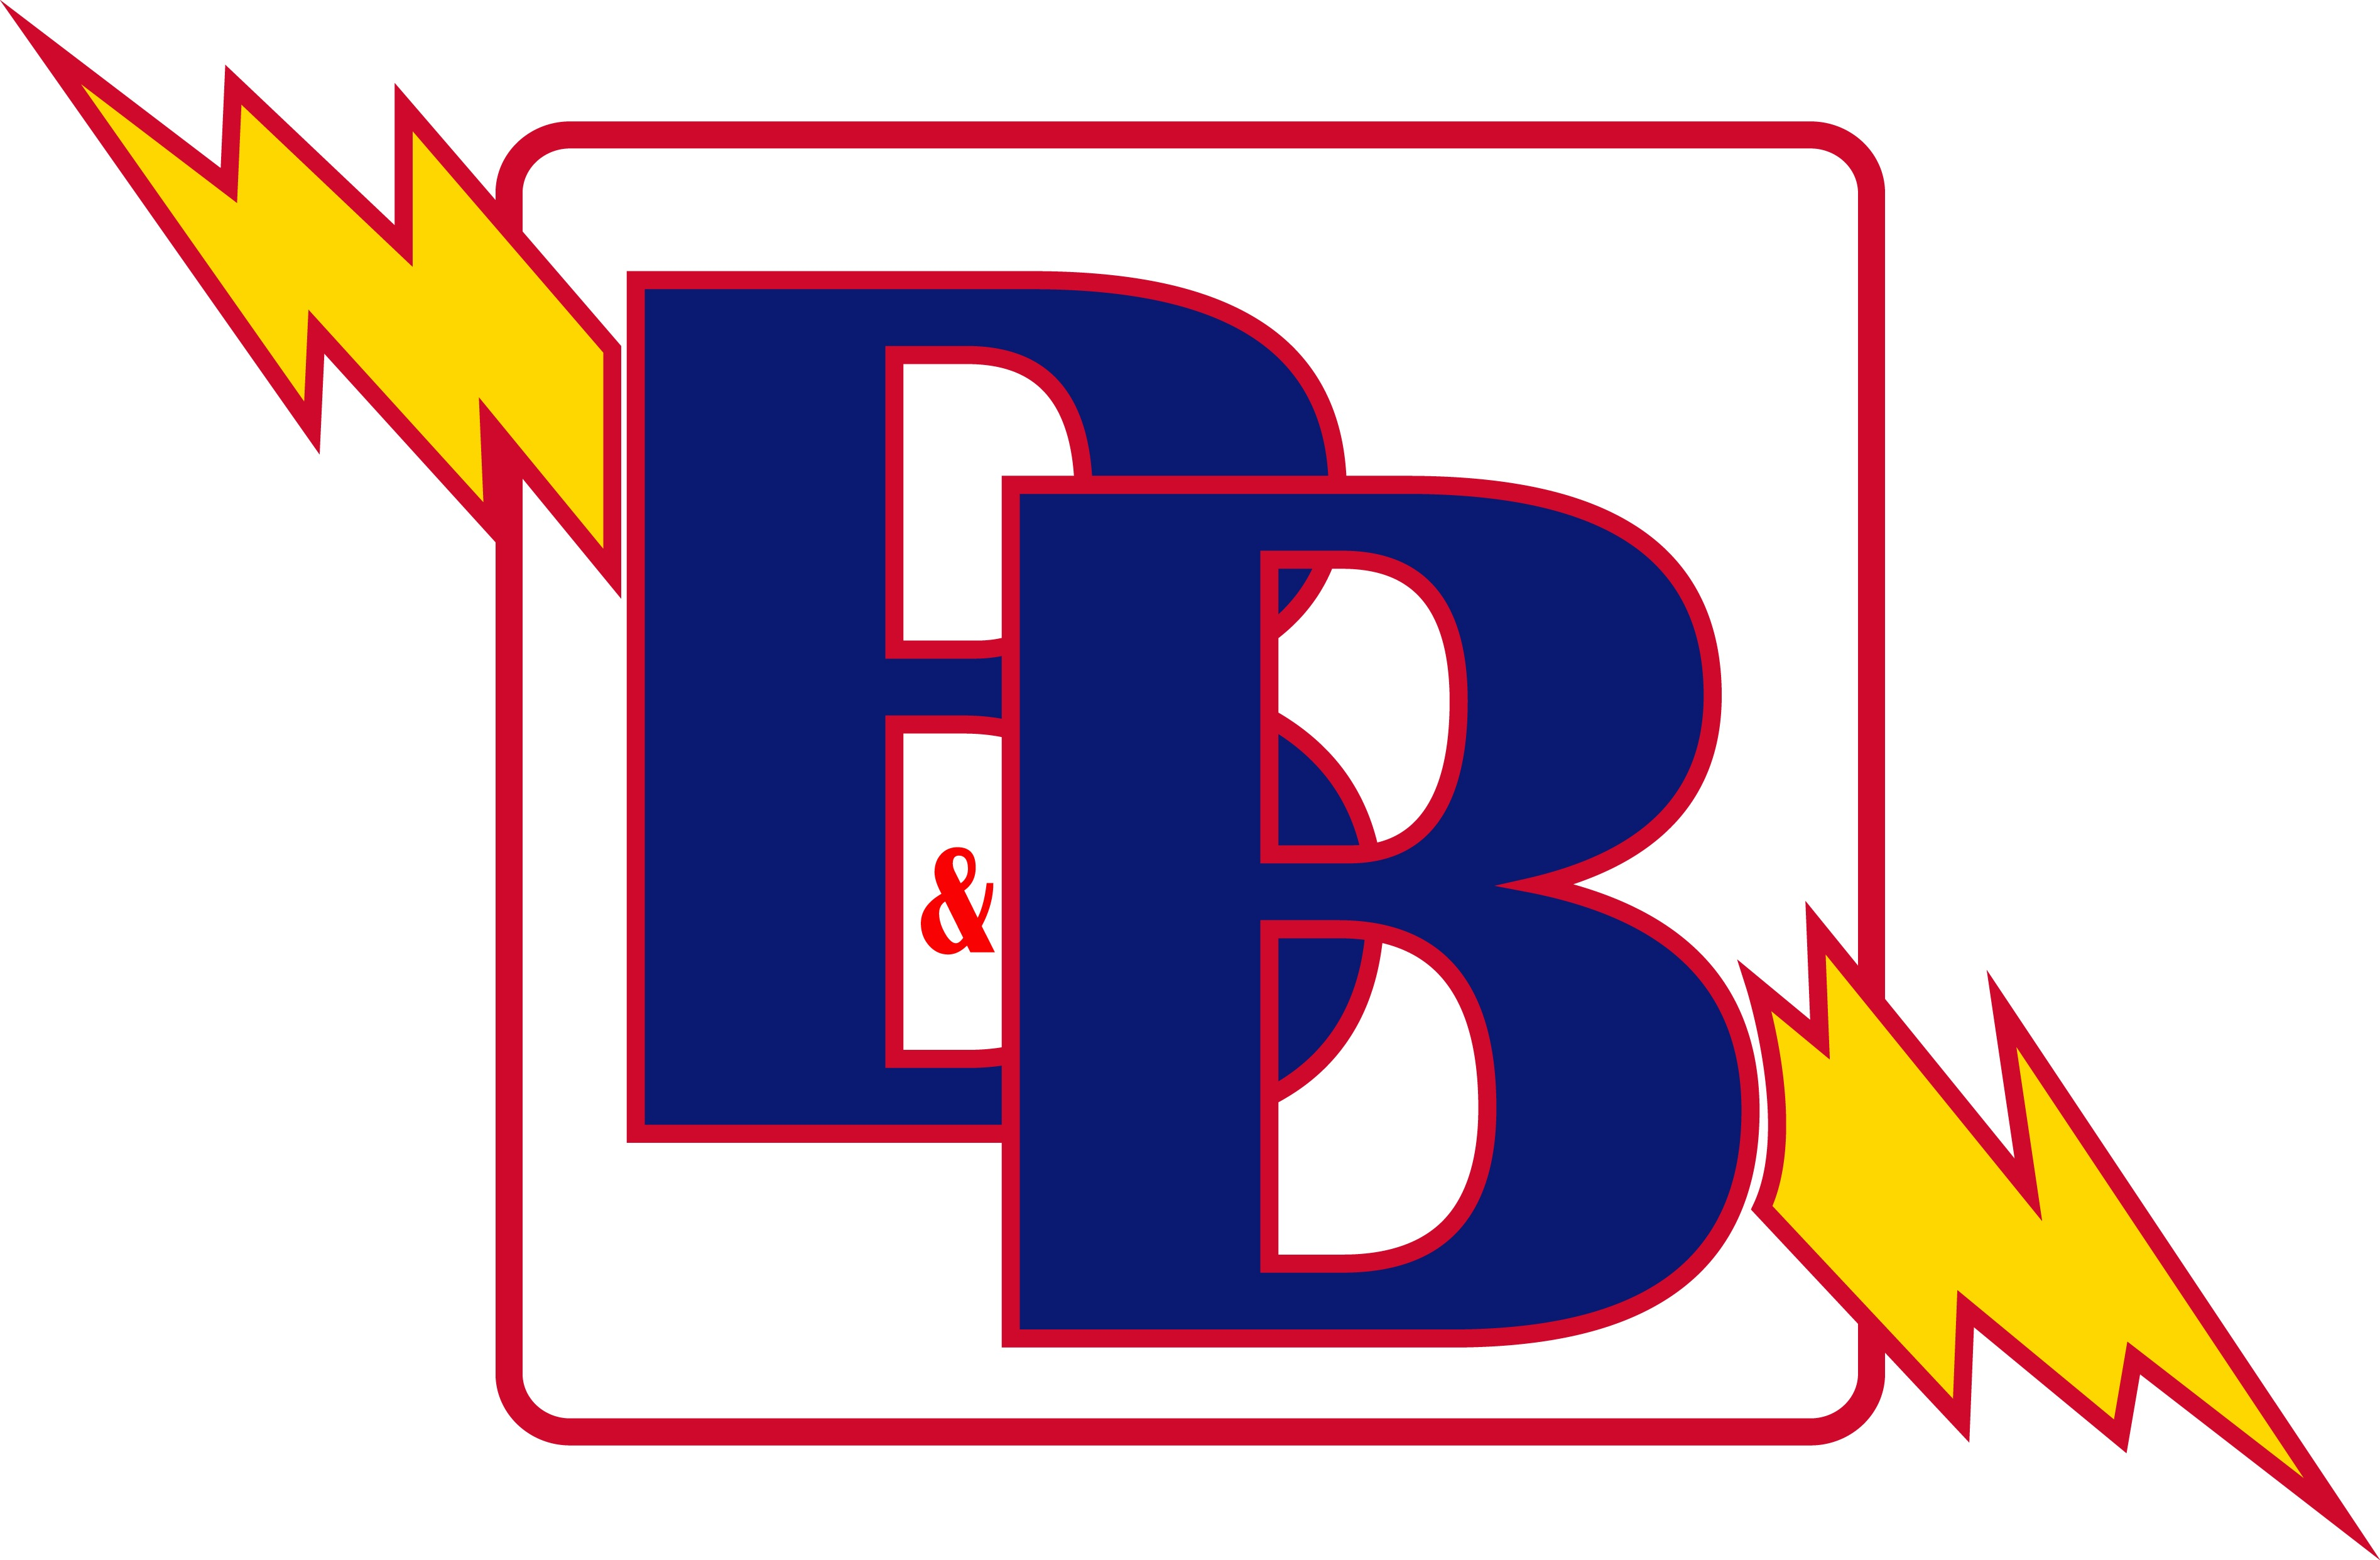 B & B Electrical and Utility Contractors, Inc.